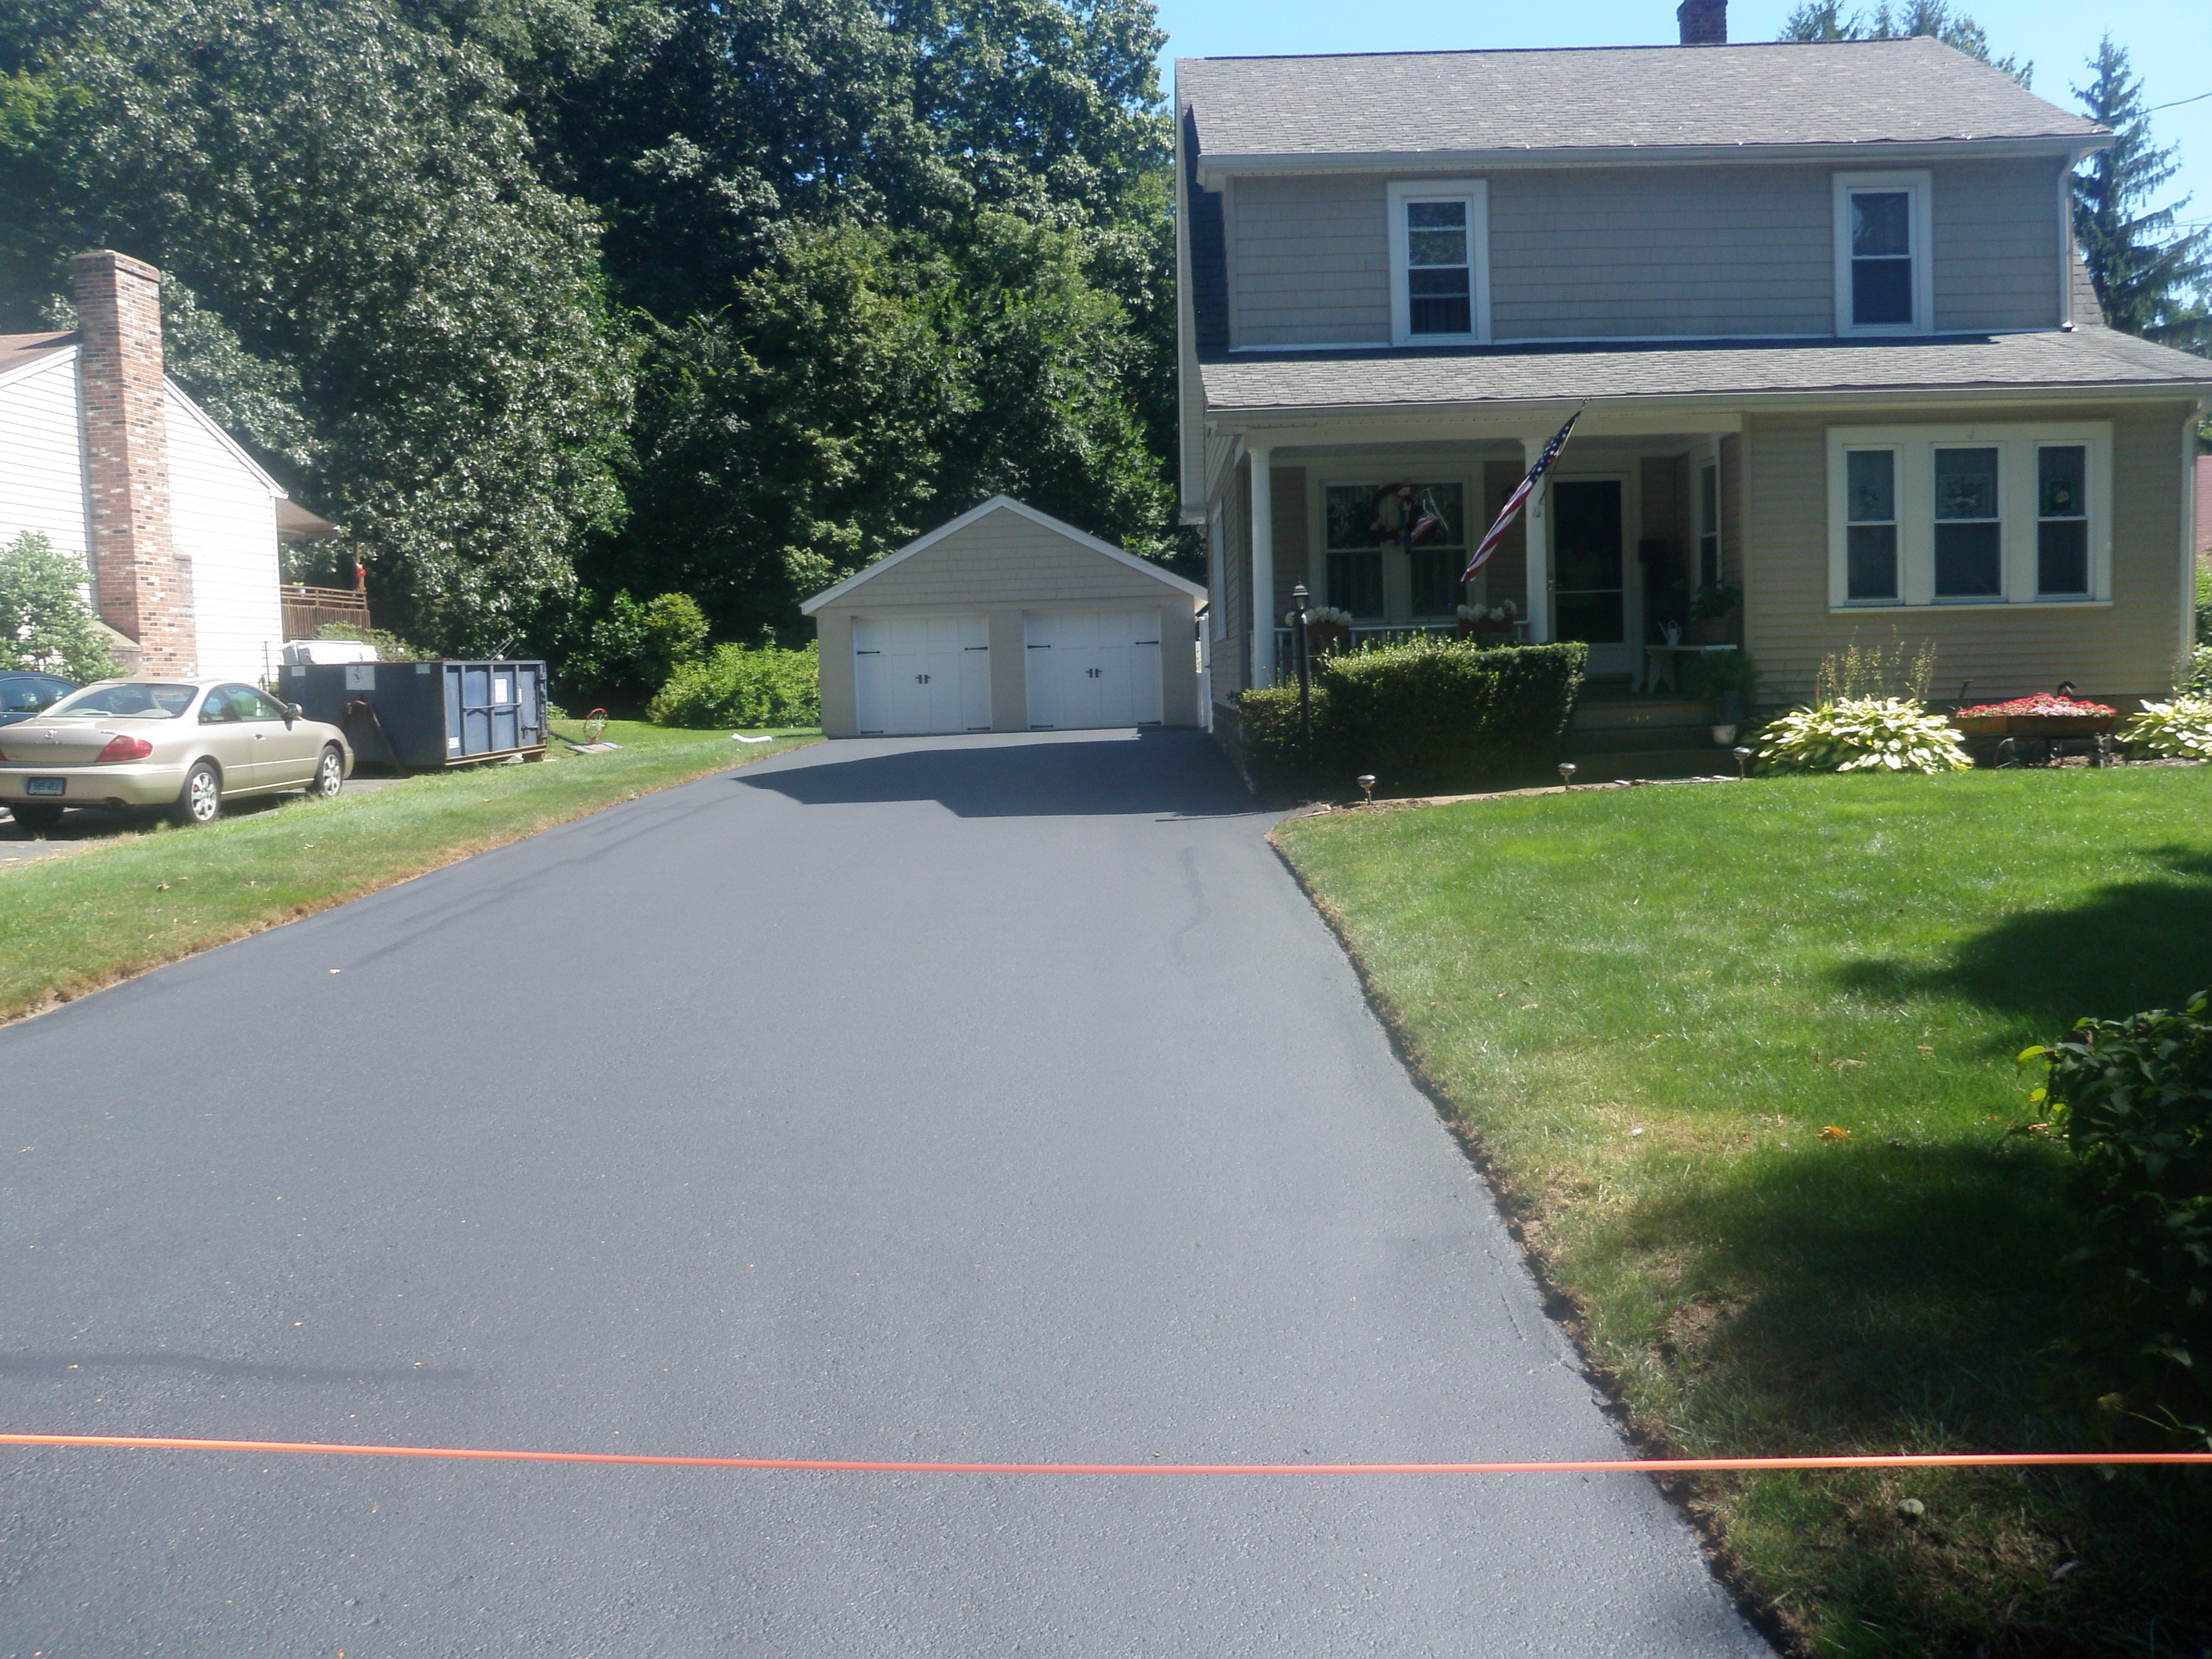 Finished Driveway Sealing Project 4